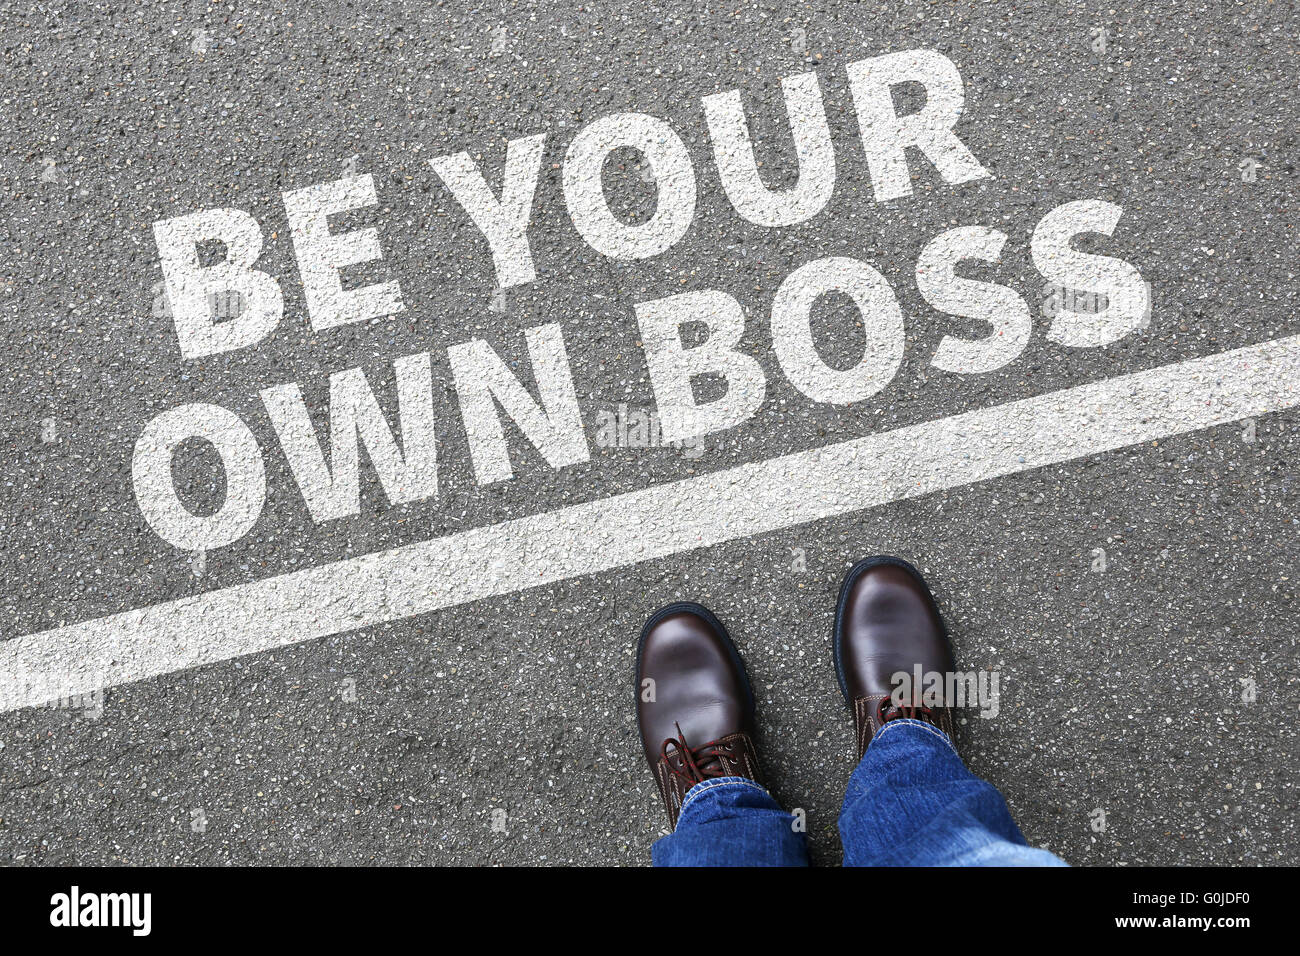 Self-employed self employed employment be your own boss businessman business man concept - Stock Image